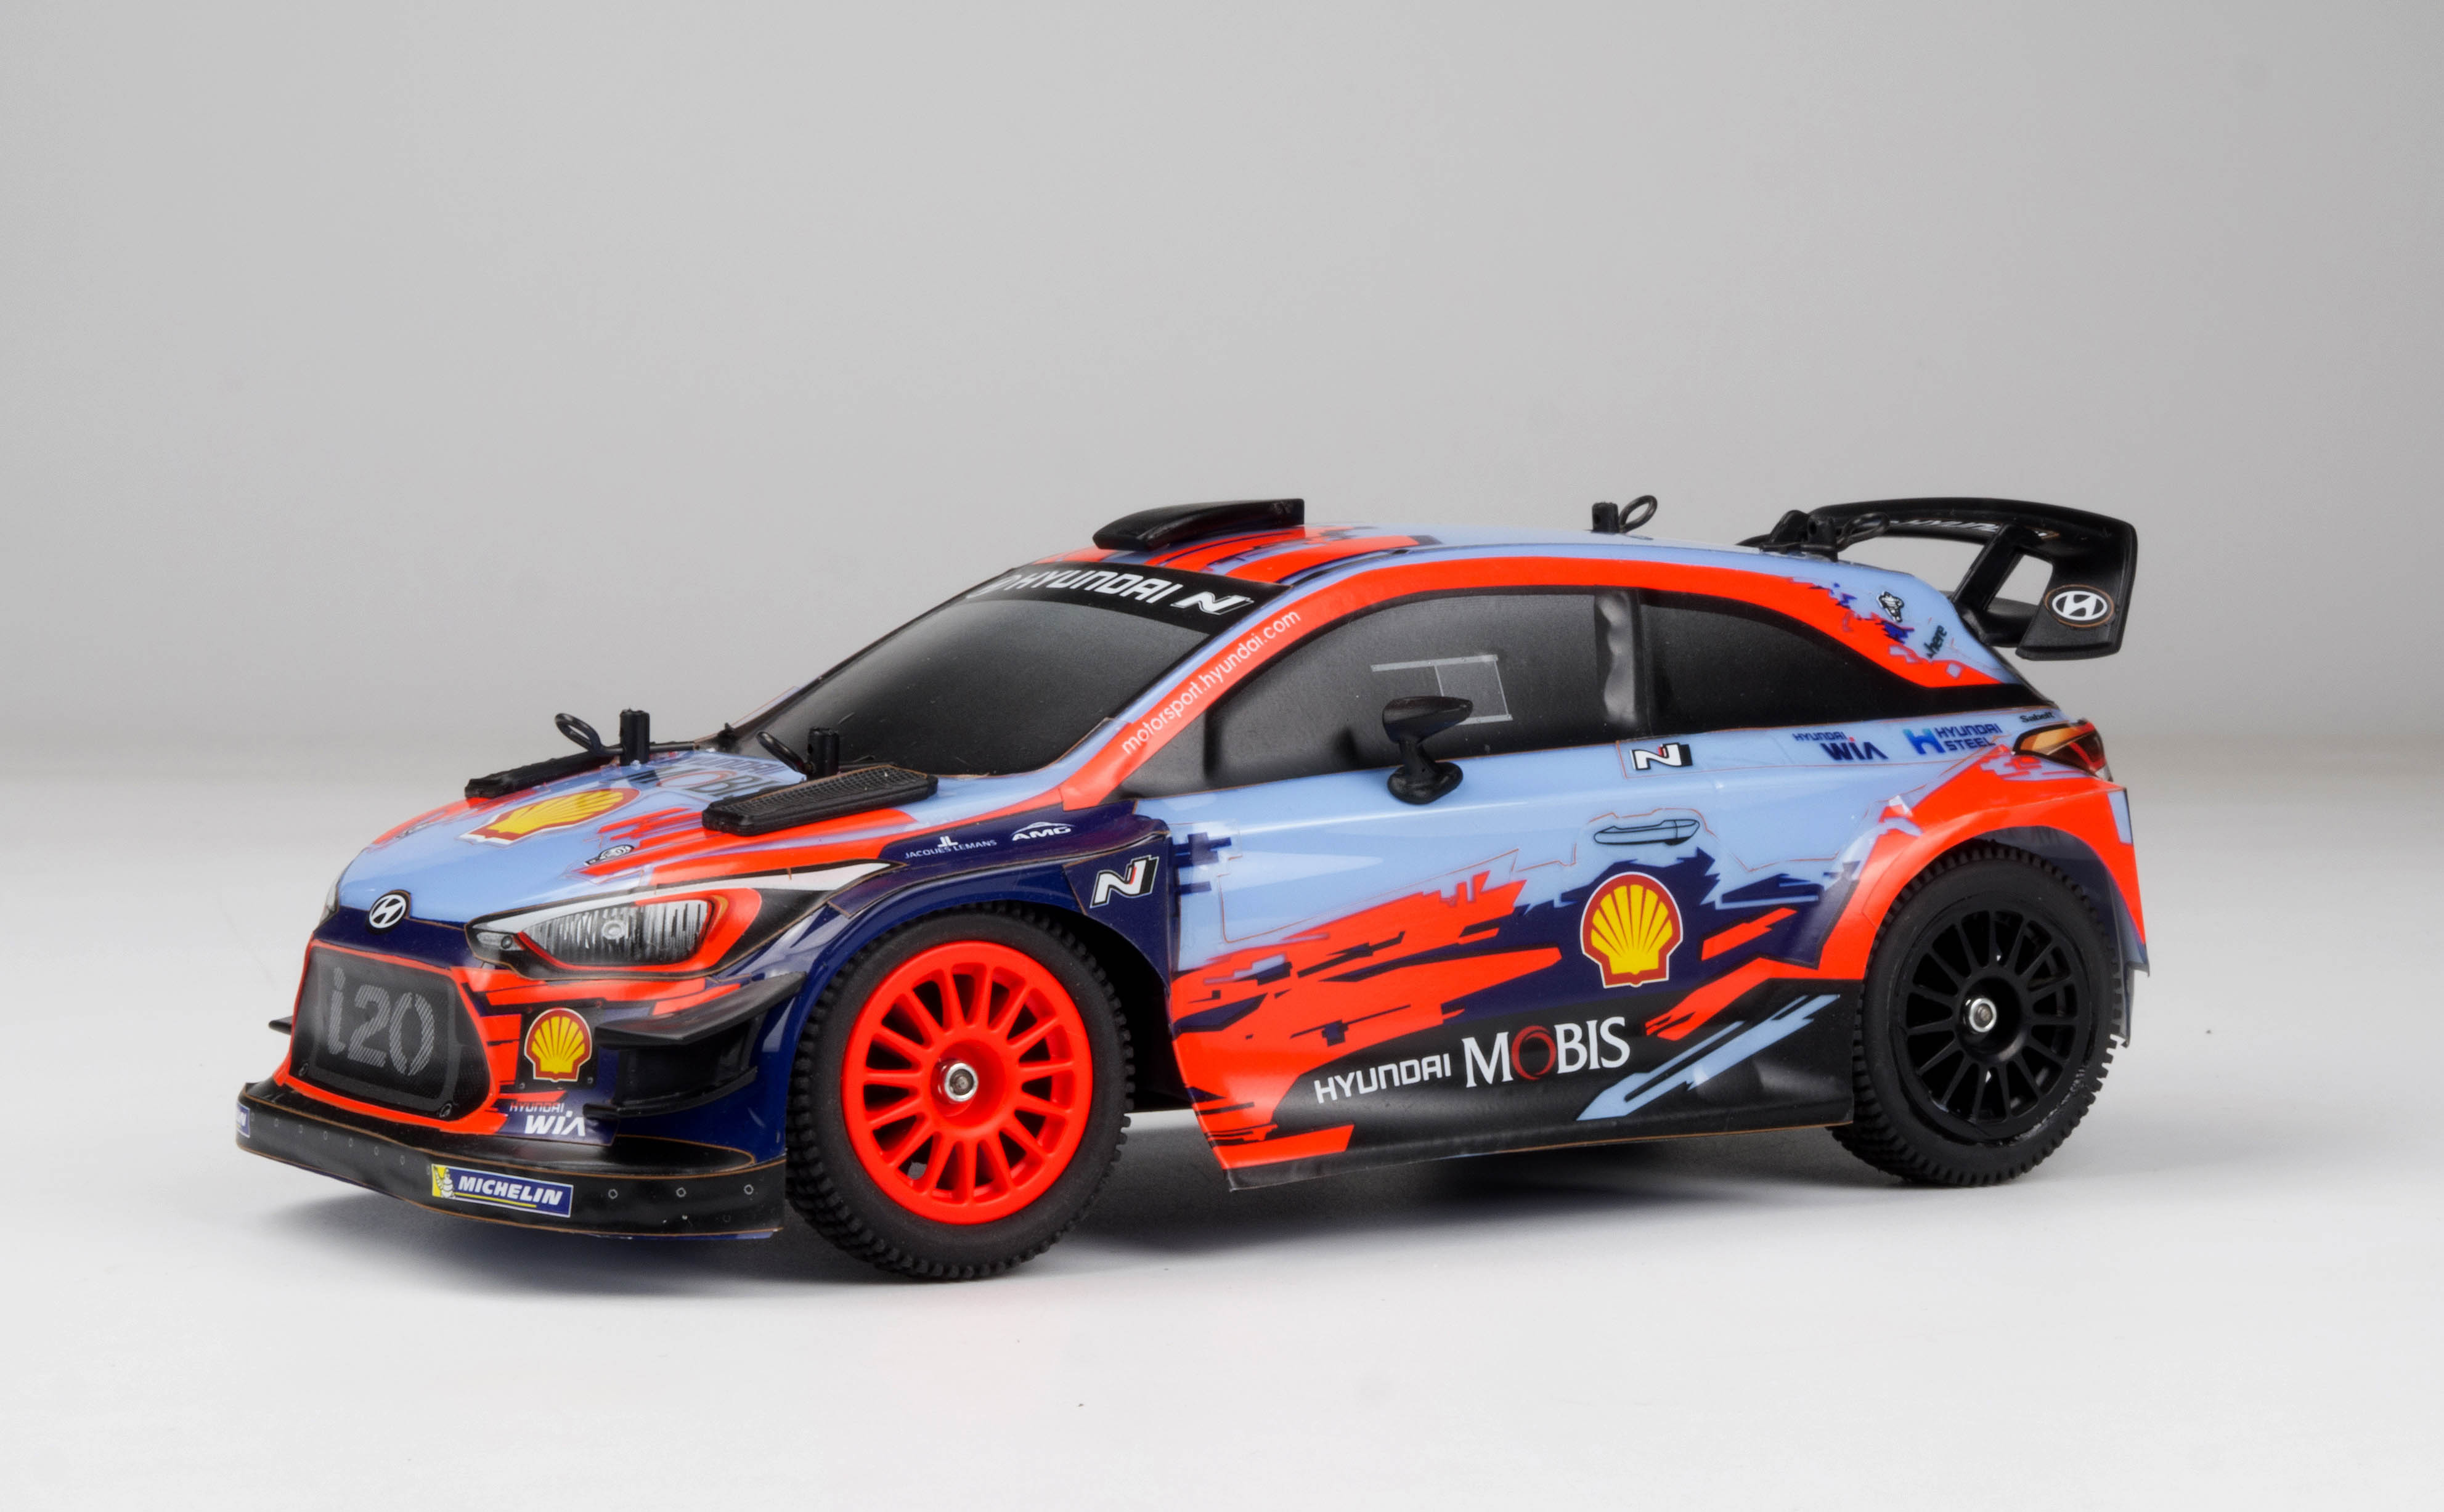 Carisma GT24 Hyundai i20 1/24-scale Brushless Rally Car